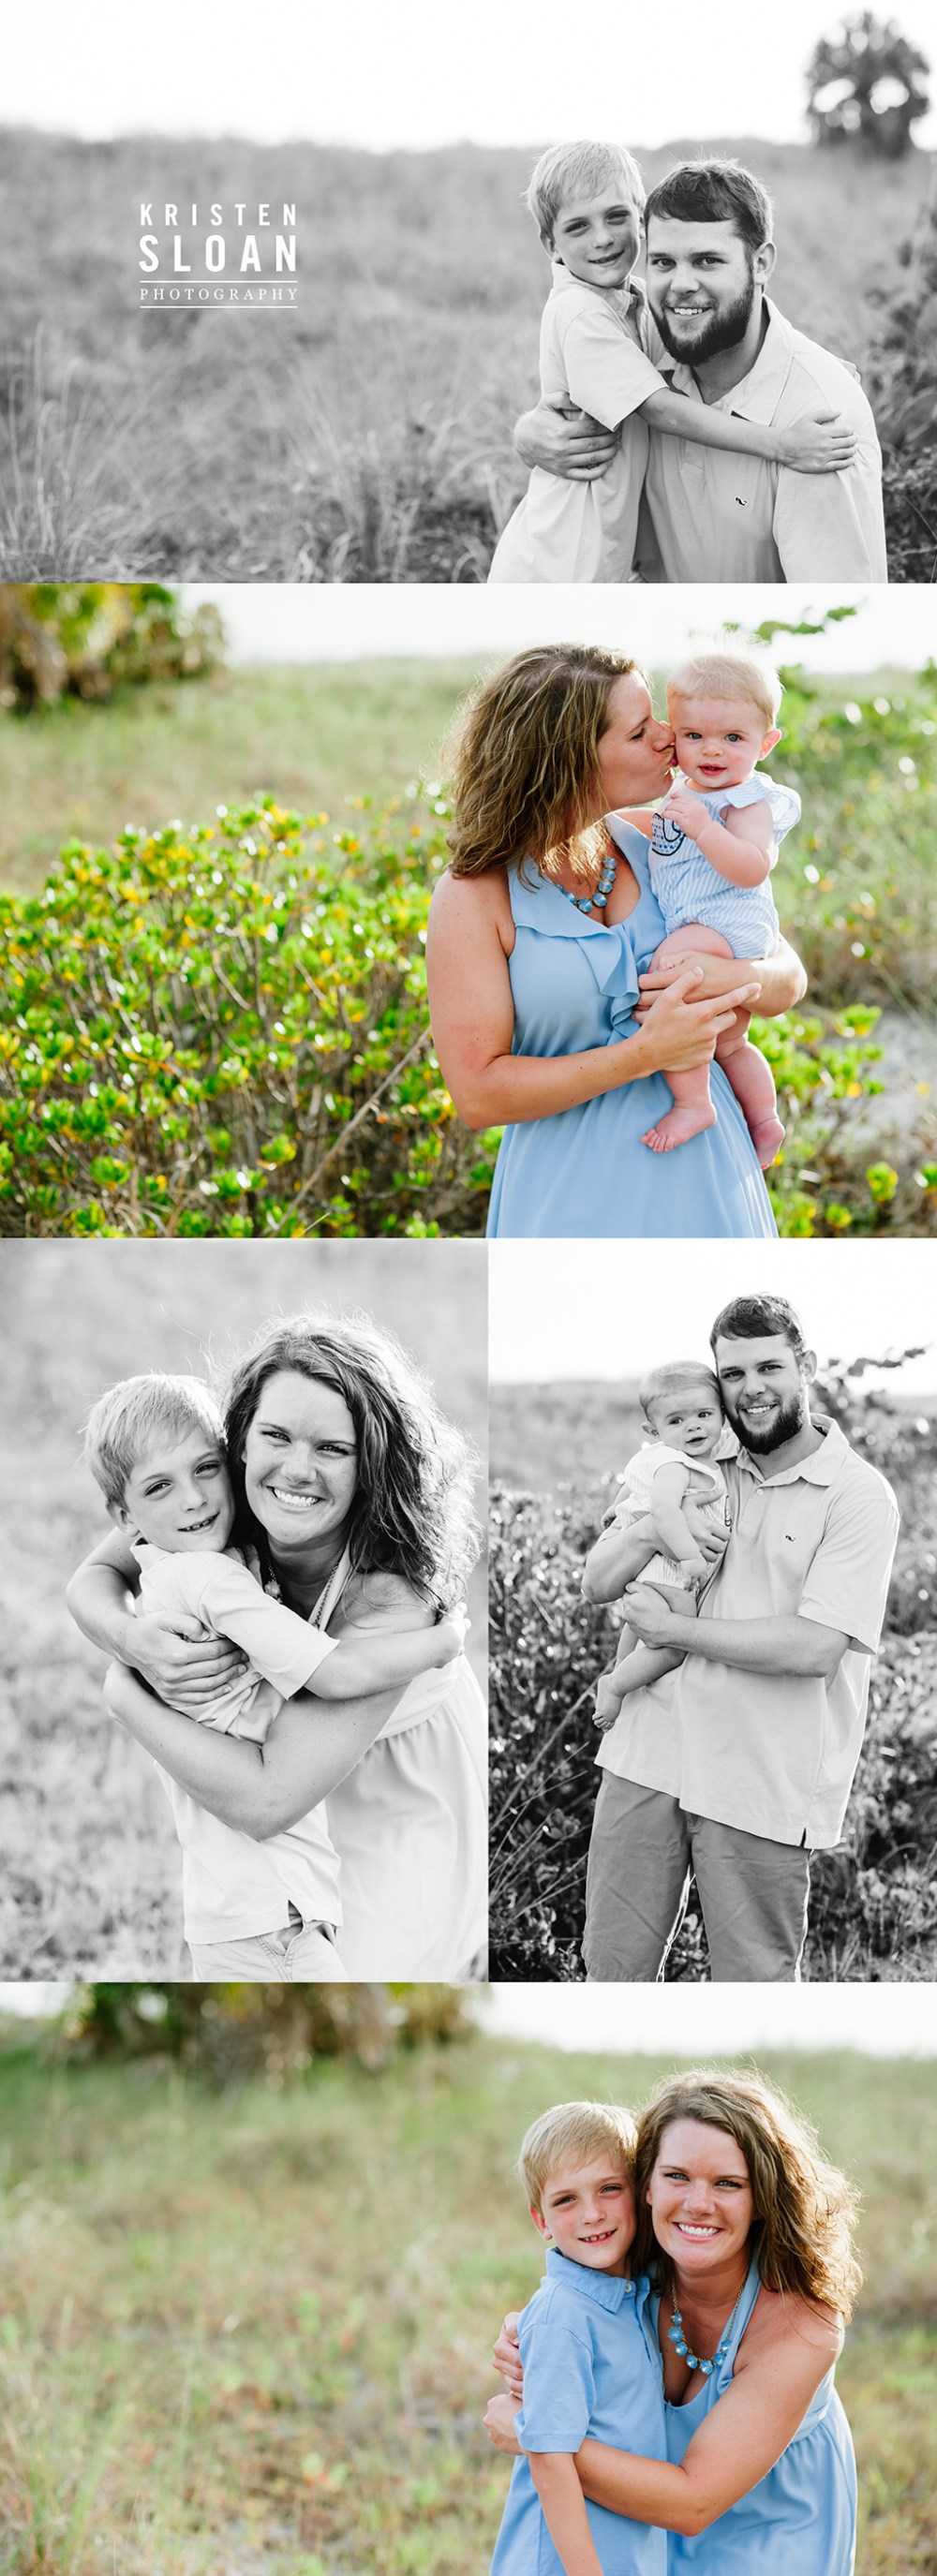 Treasure Island Beach Club Family Sunset Portraits with Vineyard Vines by Kristen Sloan Photography